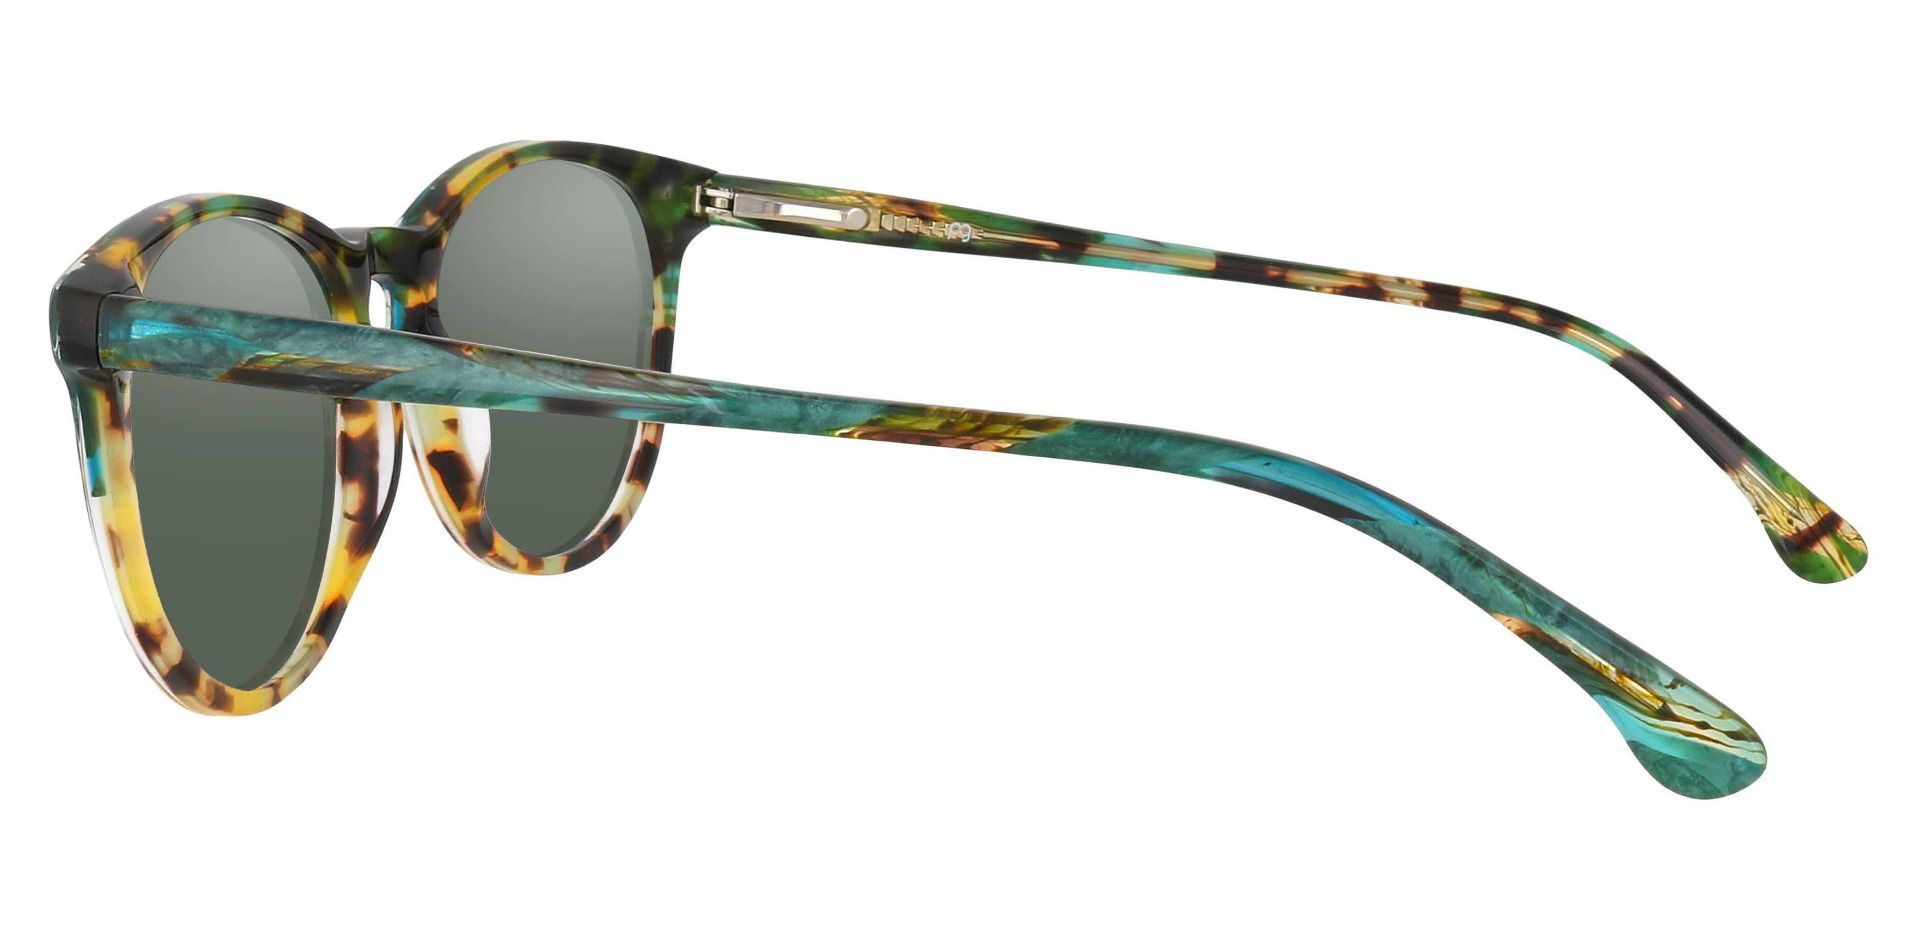 Carriage Round Progressive Sunglasses - Multi Color Frame With Green Lenses